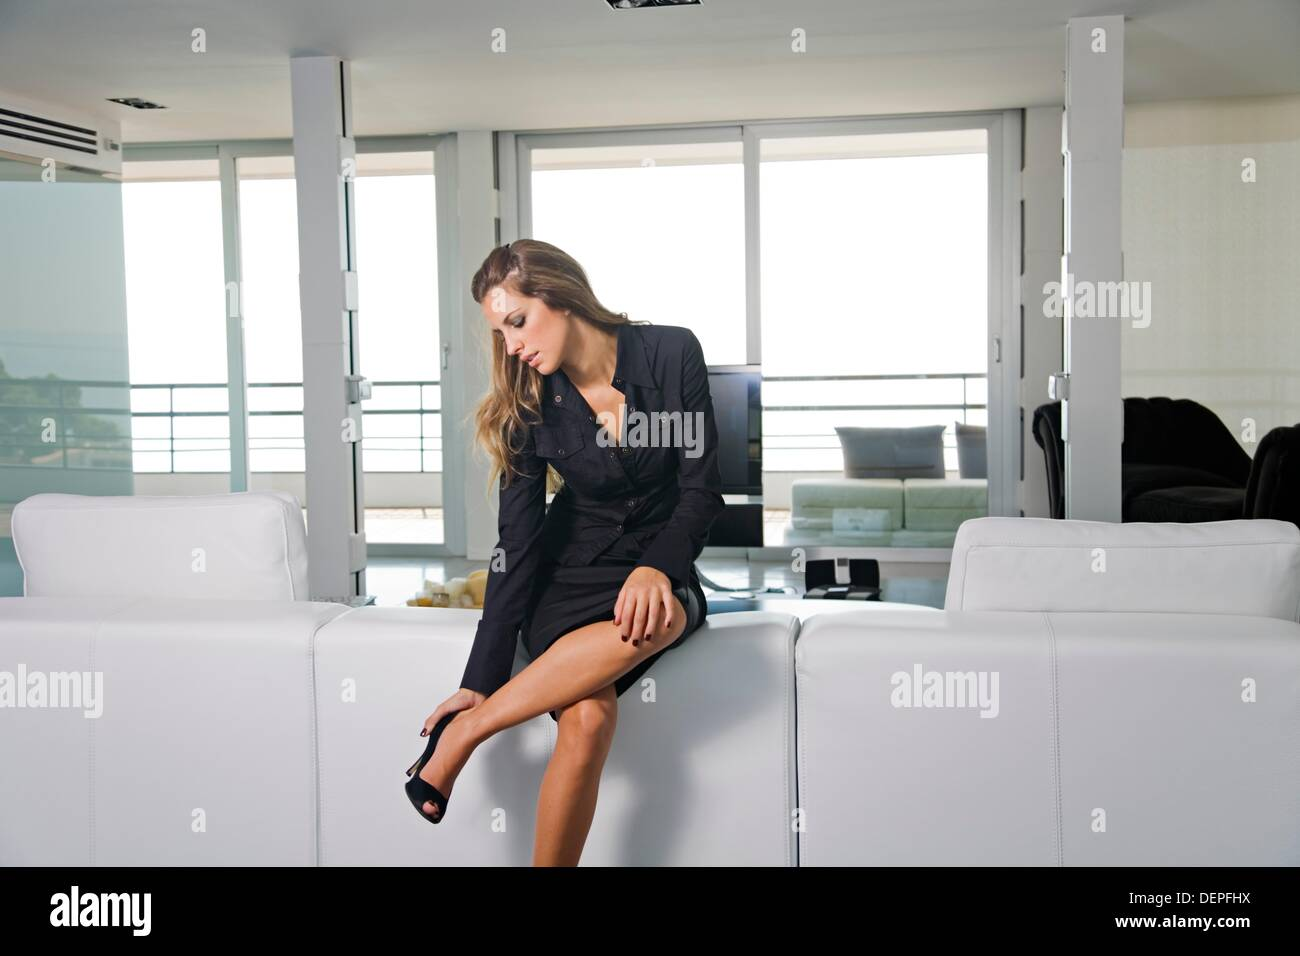 Young Business Woman Arriving Home And Taking Out Her